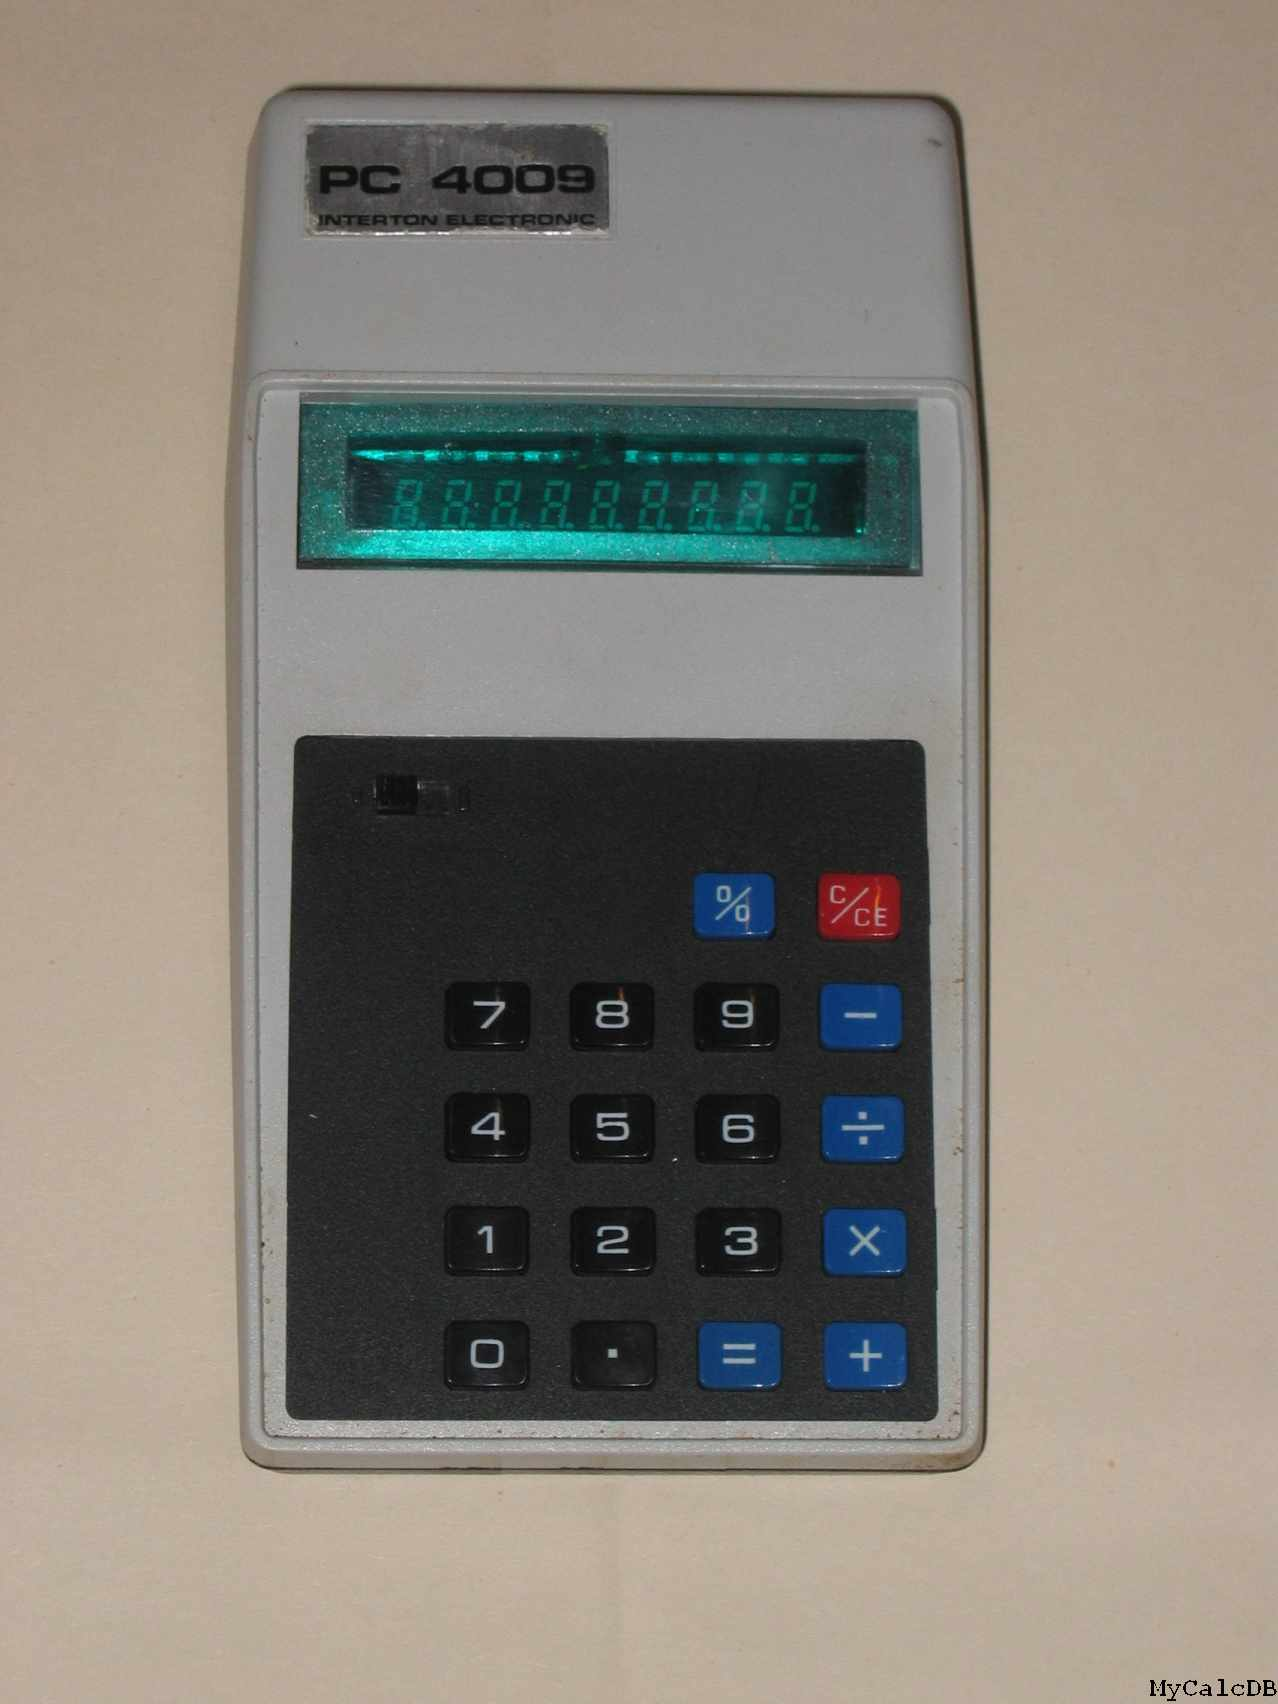 Interton Electronic PC 4009